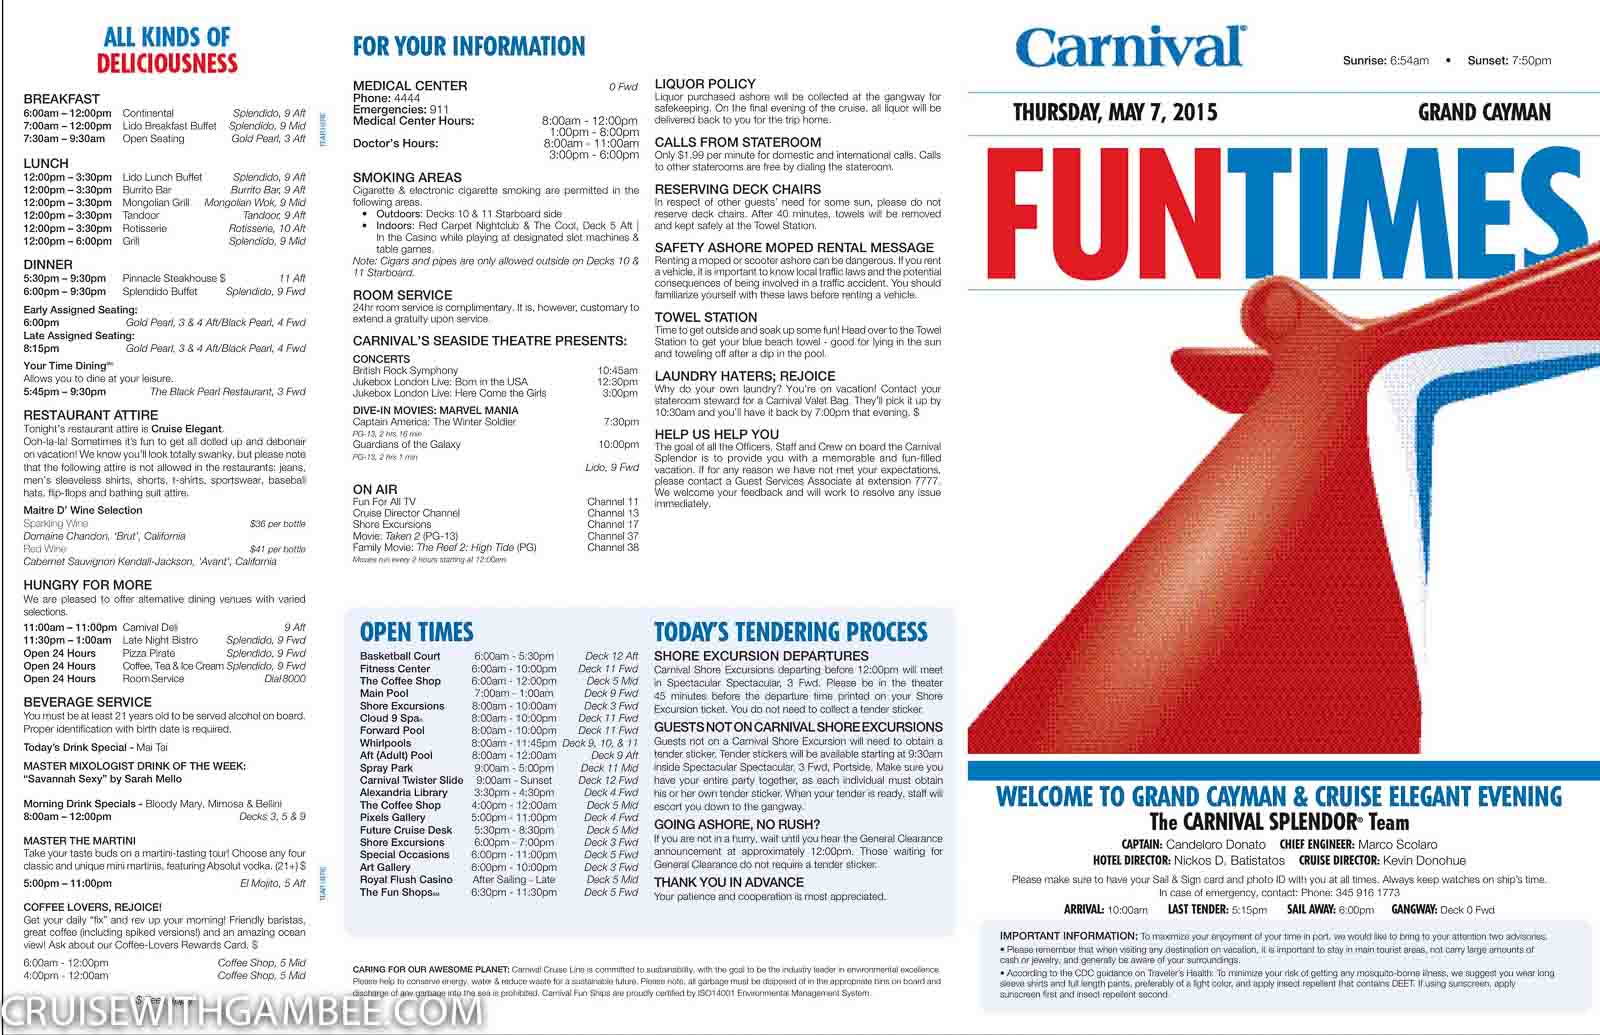 Carnival Splendor Funtimes Daily Itinerary Cruise With